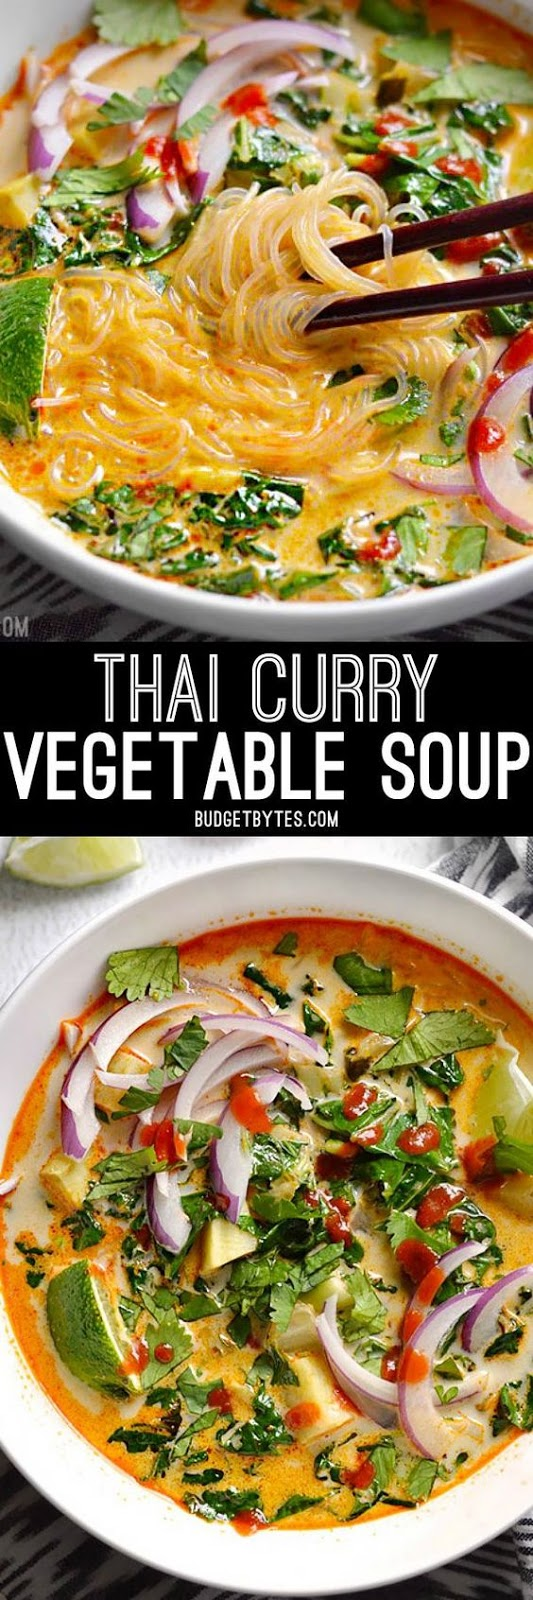 HEALTHY THAI CURRY VEGETABLE SOUP